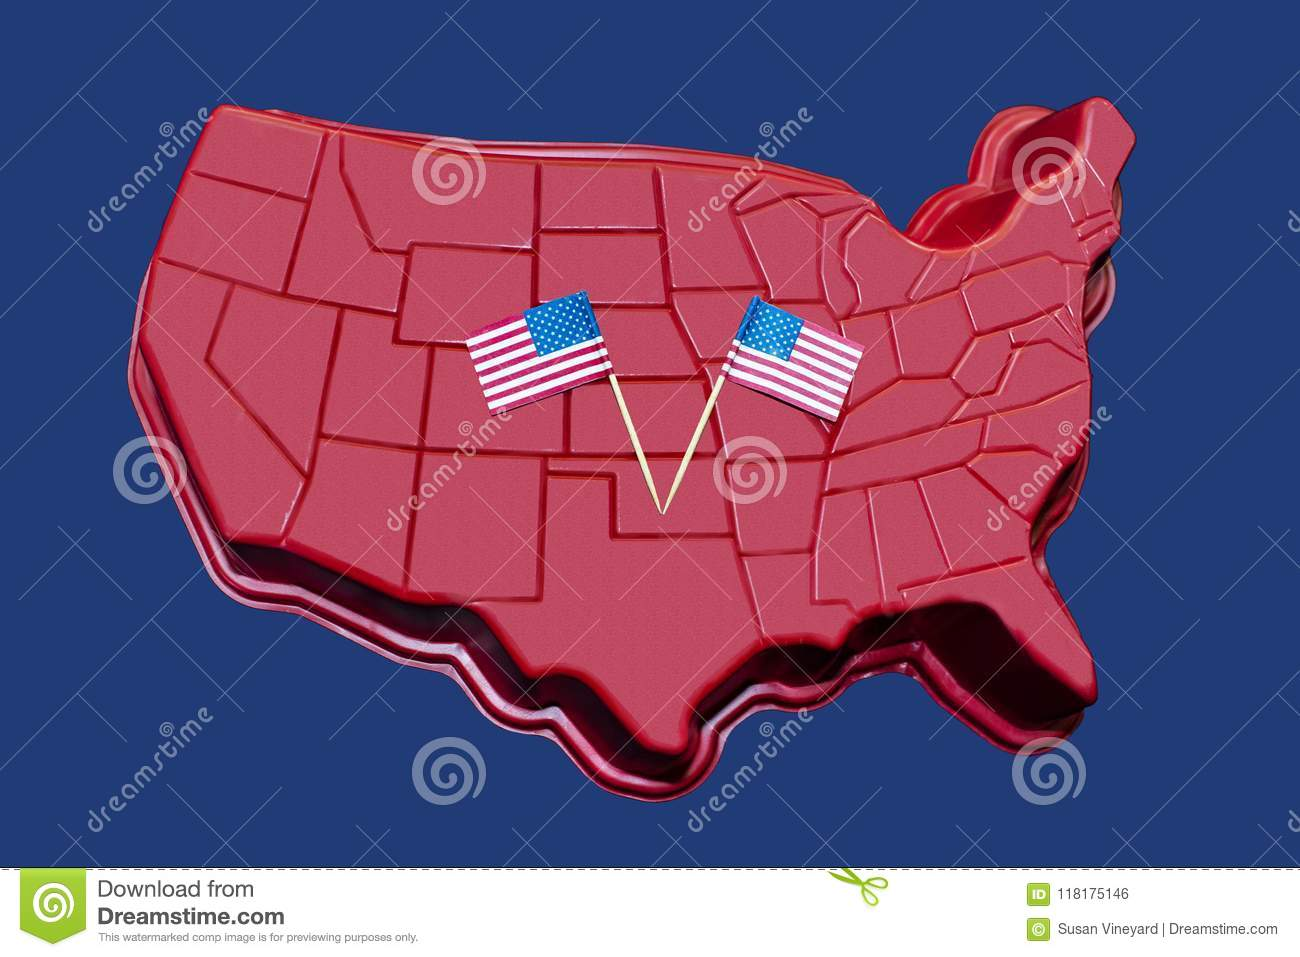 Three Dimensional Map Of The Continental US With American ...